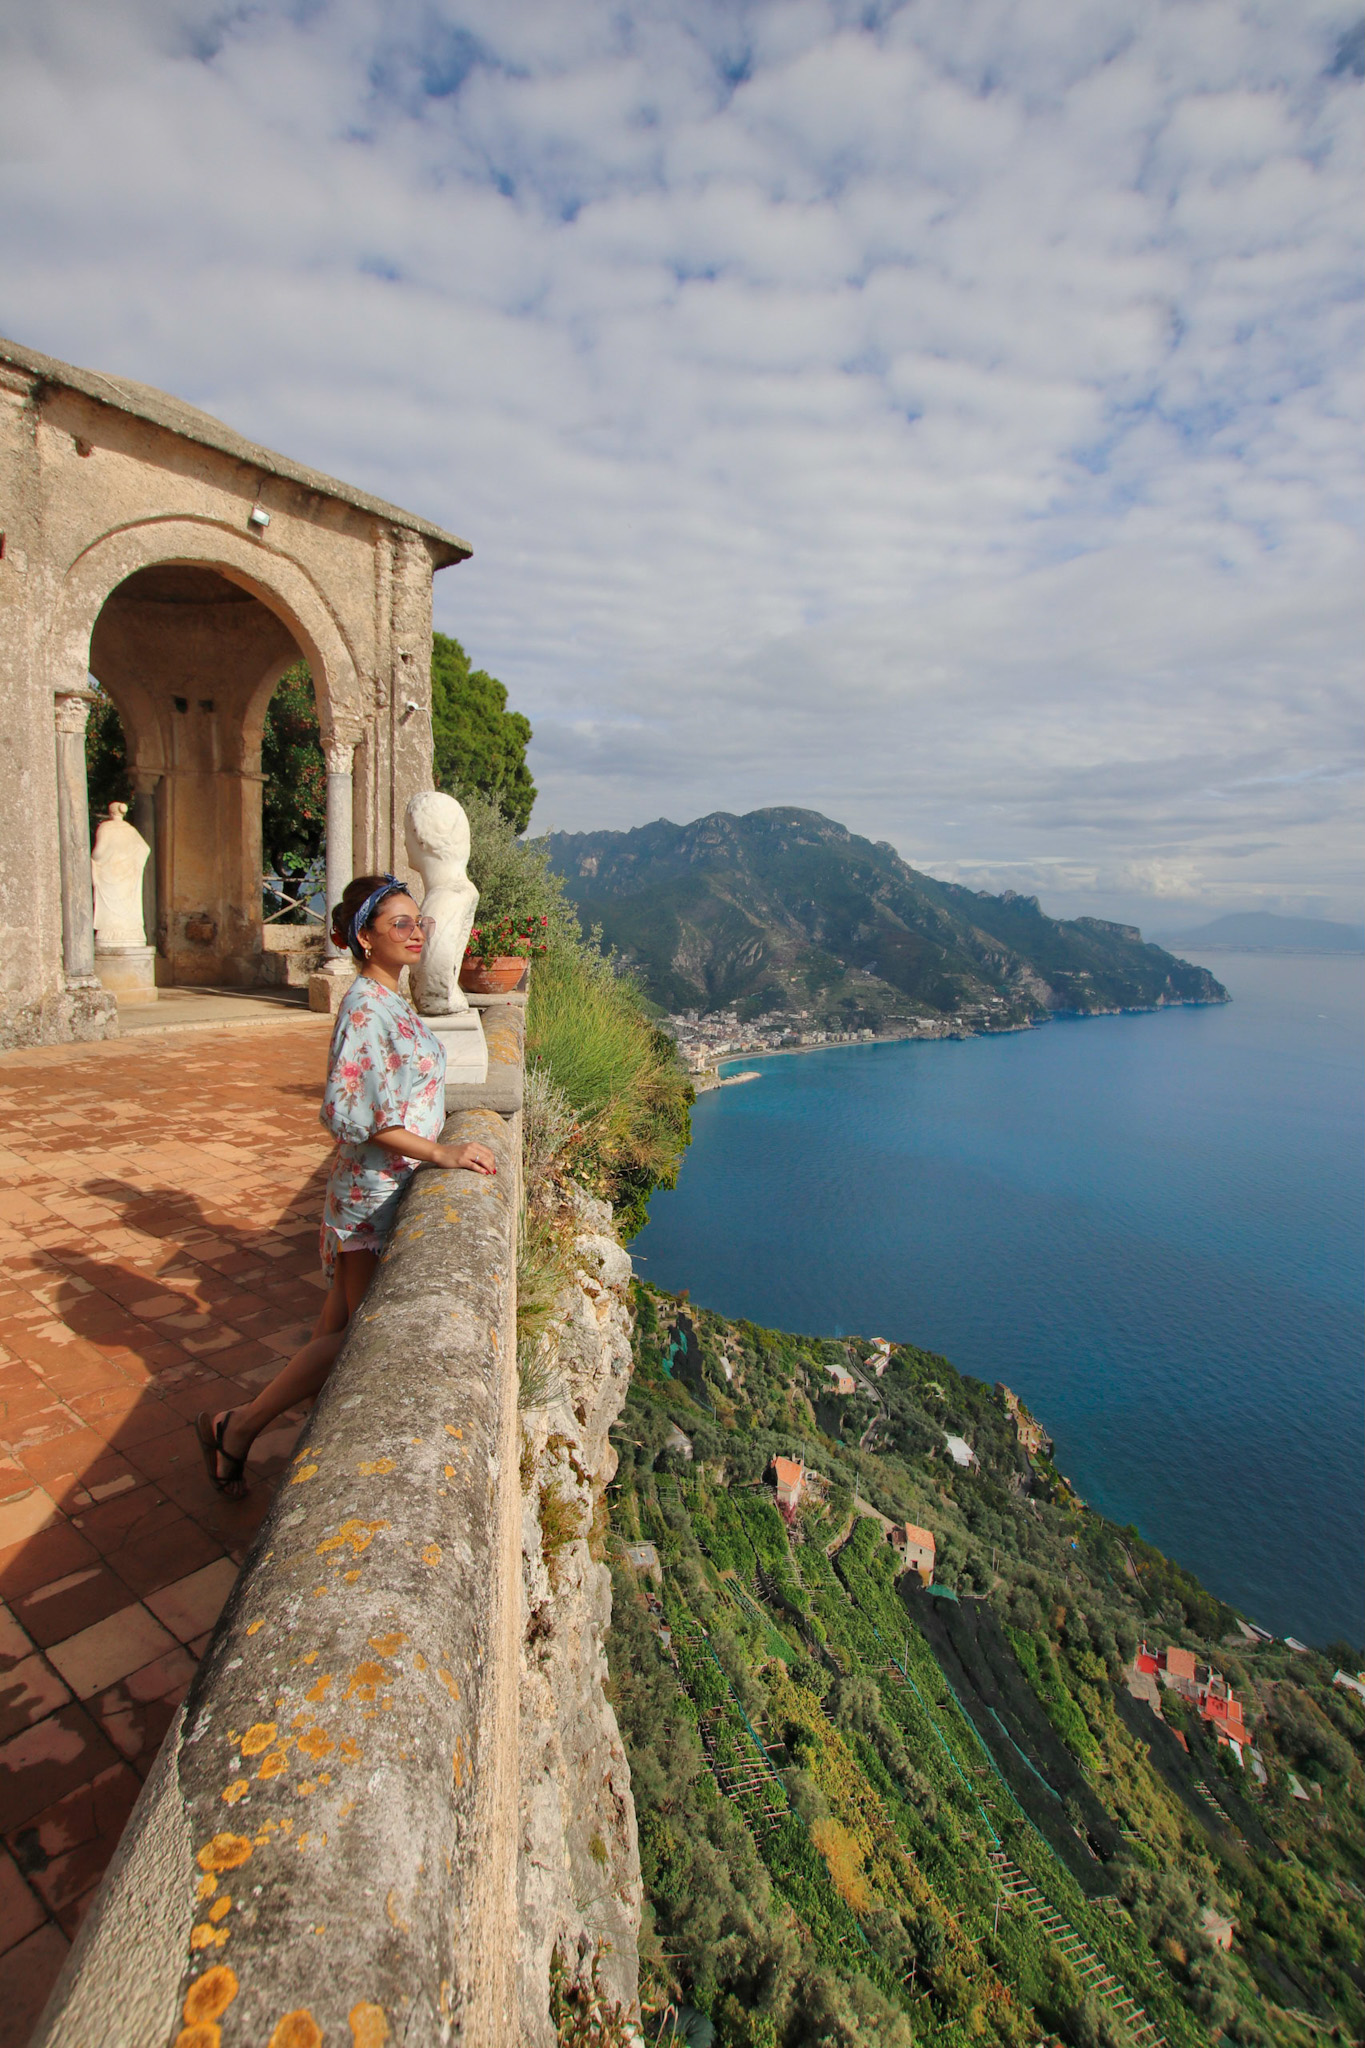 At the Terrace Of Infinity-Ravello Italy